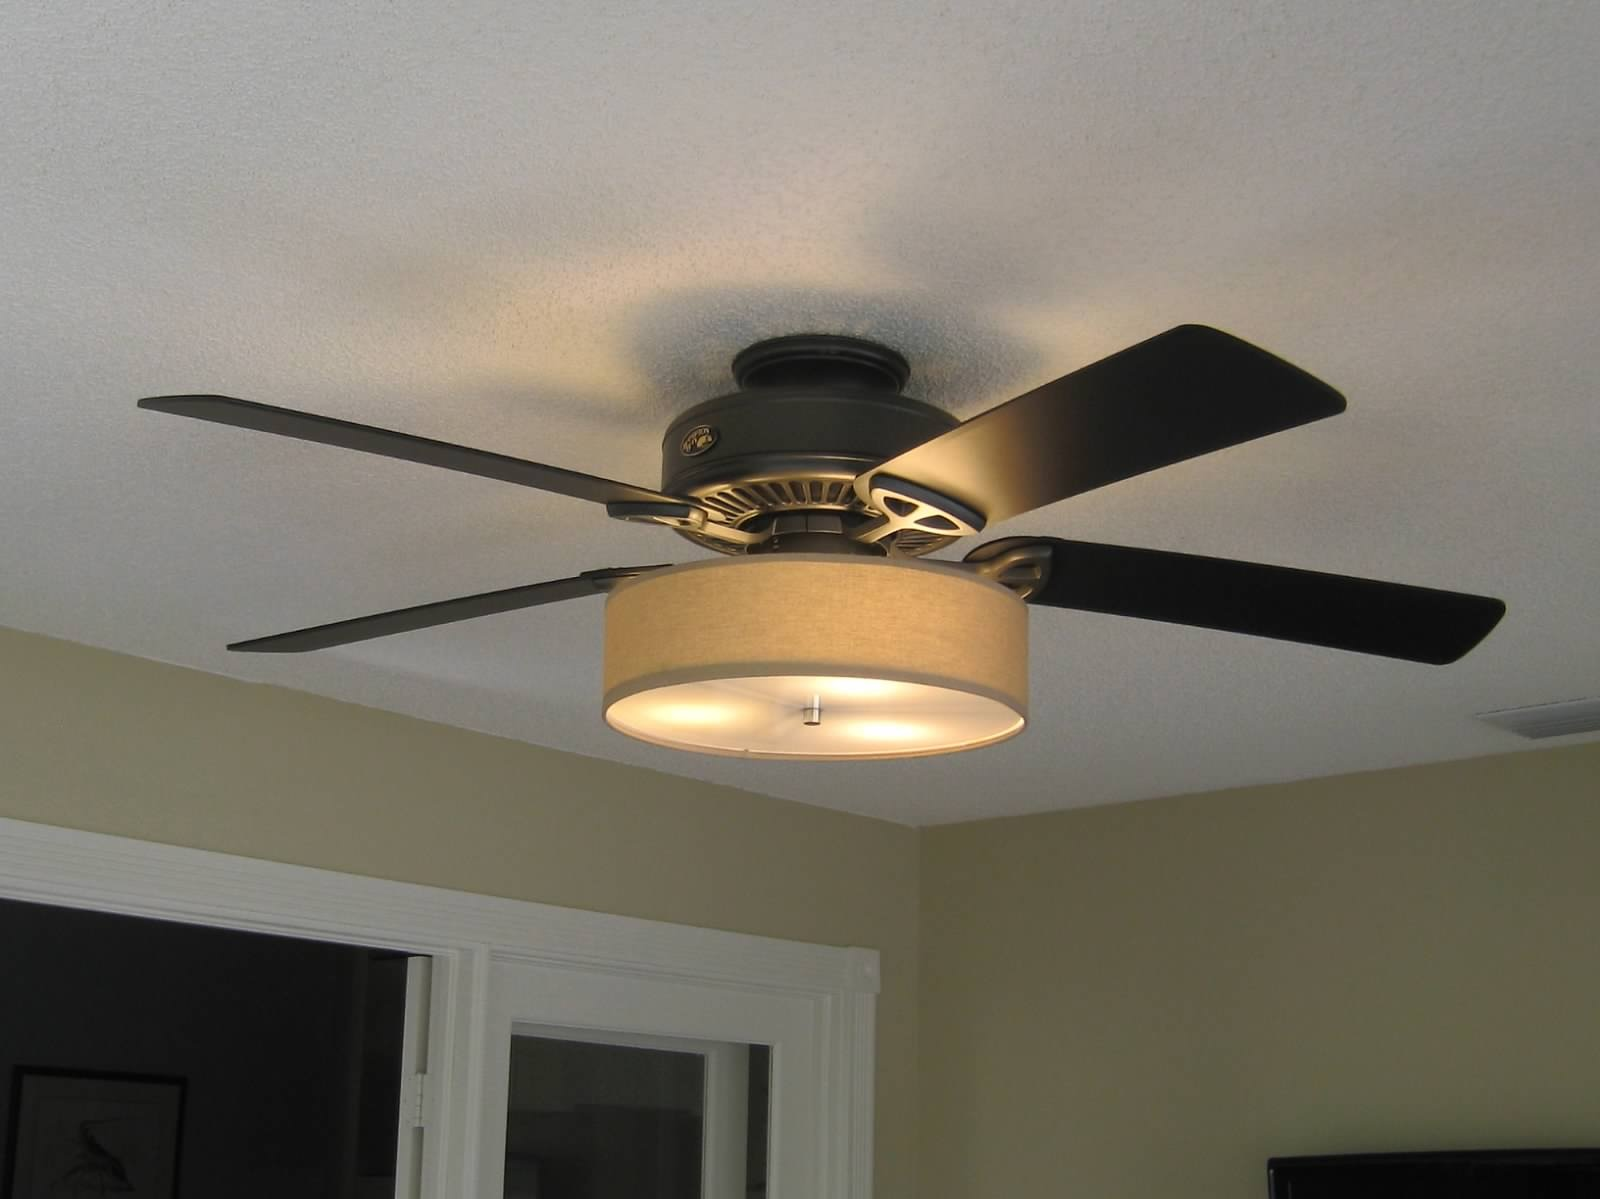 low profile linen drum shade light kit for ceiling fan s t lighting llc. Black Bedroom Furniture Sets. Home Design Ideas